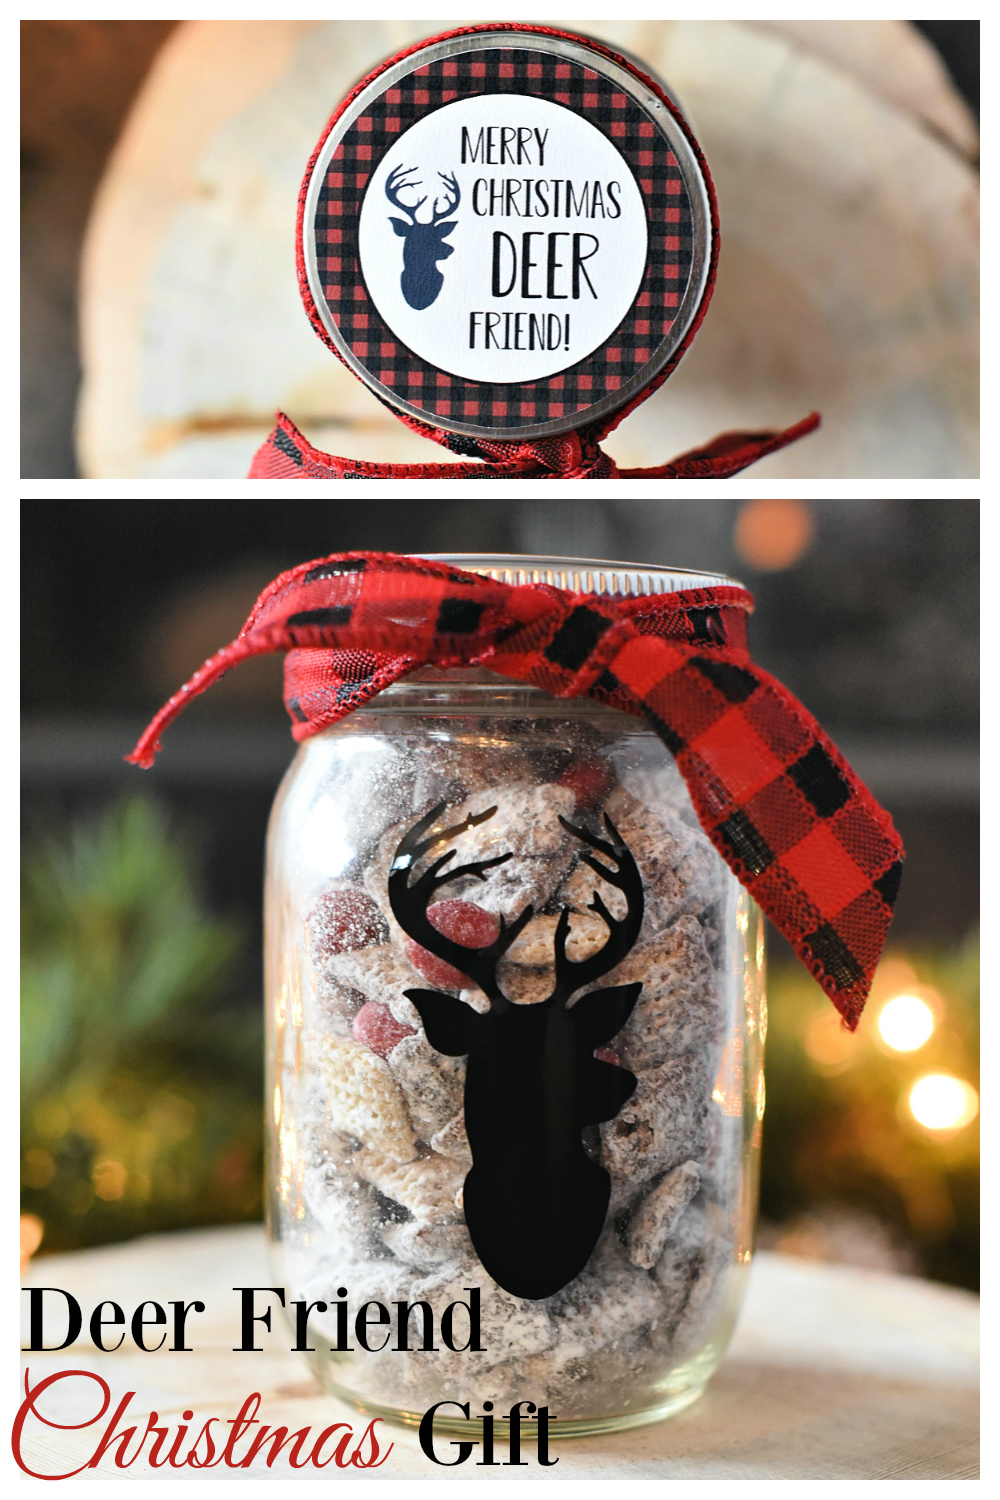 Deer Friend Gift Idea-Fill a jar with something yummy and add this cute Merry Christmas to you Deer Friend tag! Makes a great Christmas gift for neighbors or friends! #christmasgifts #christmasgiftideas #giftideas #neighborgifts